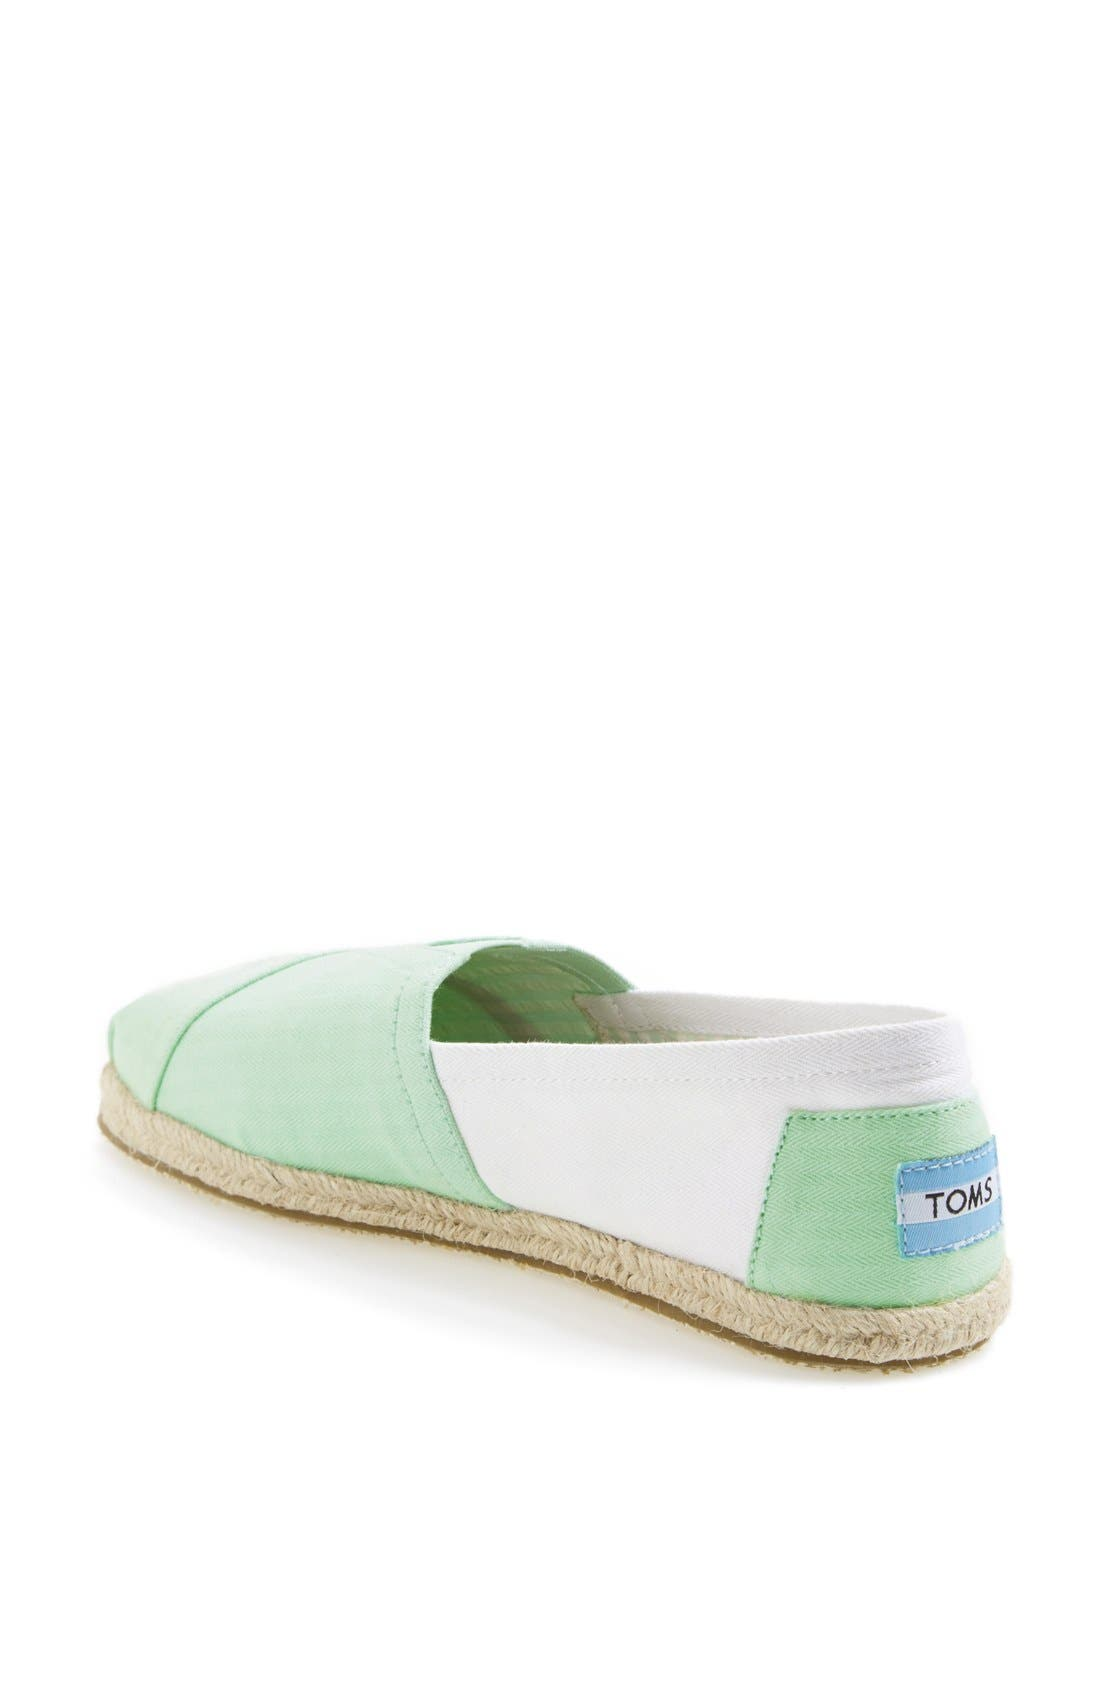 Alternate Image 2  - TOMS 'Classic - Colorblock' Slip-On (Women)